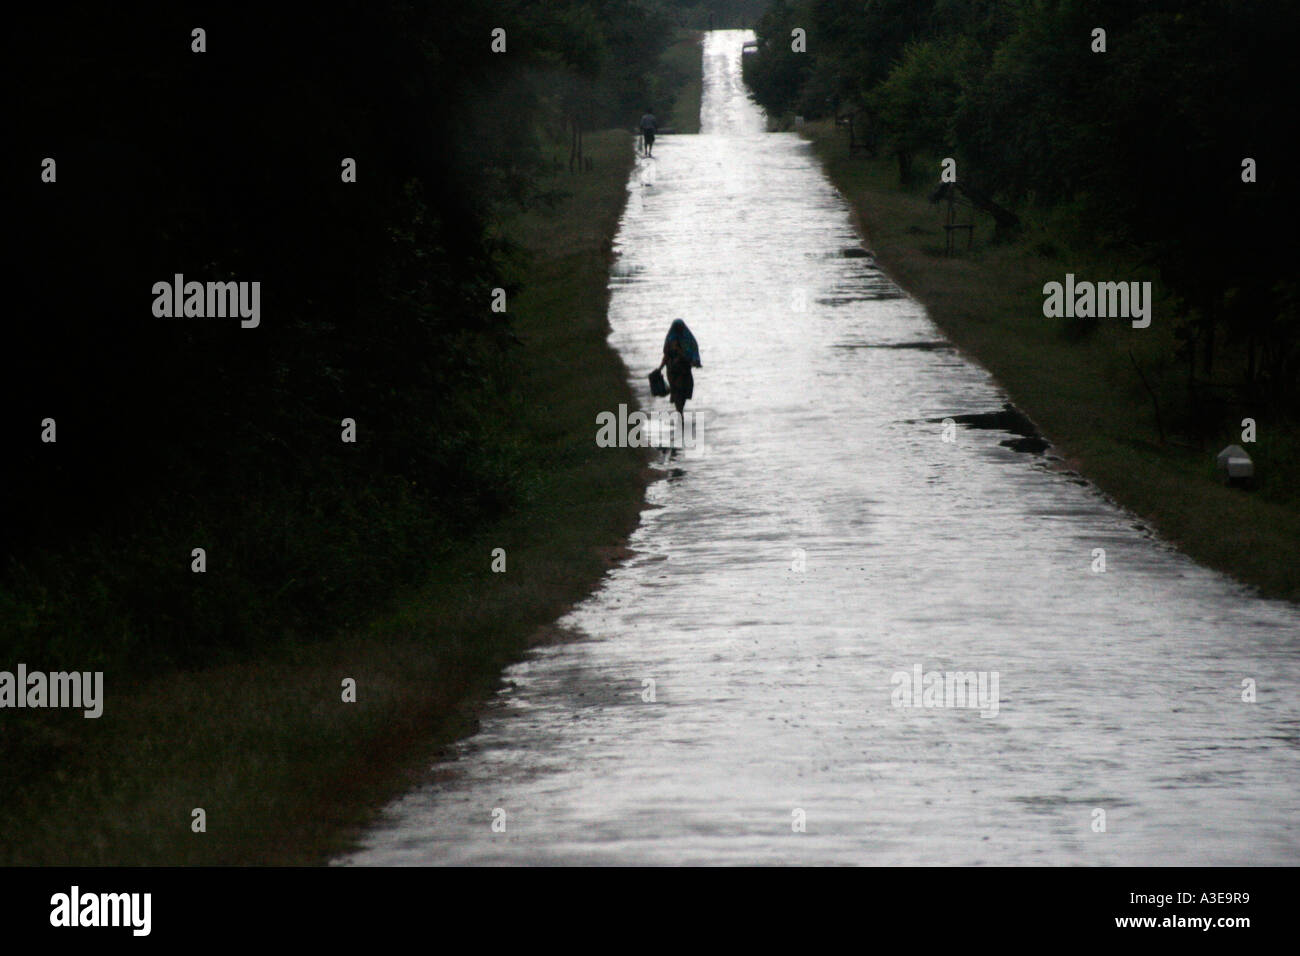 Sri Lanka, country road stretching into distance after rain, woman walking silhouetted against wet surface Stock Photo